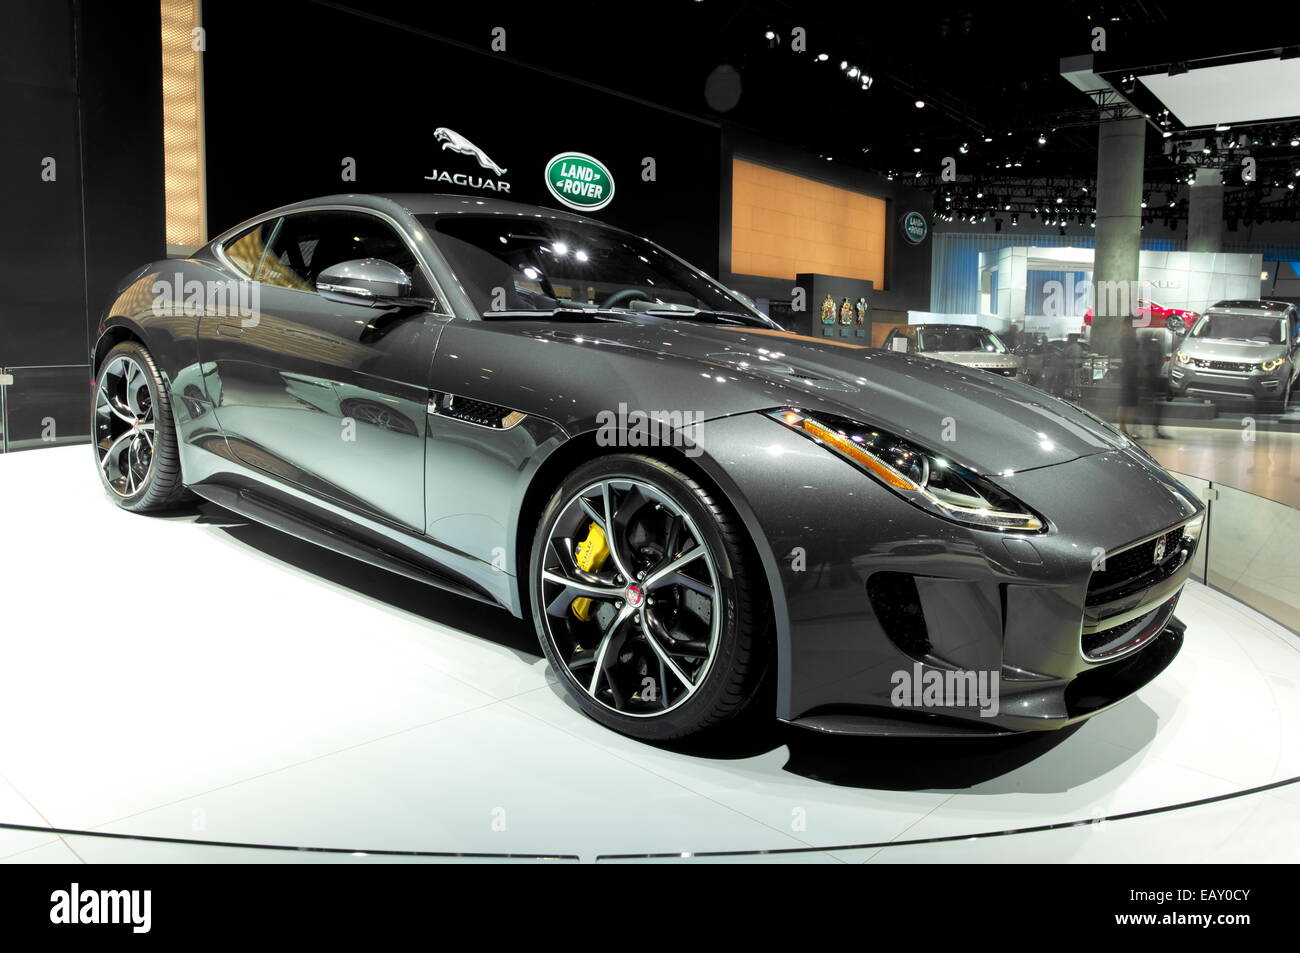 Jaguar FType Coupé AllWheelDrive R Credit J Stock Photo - All wheel drive jaguar